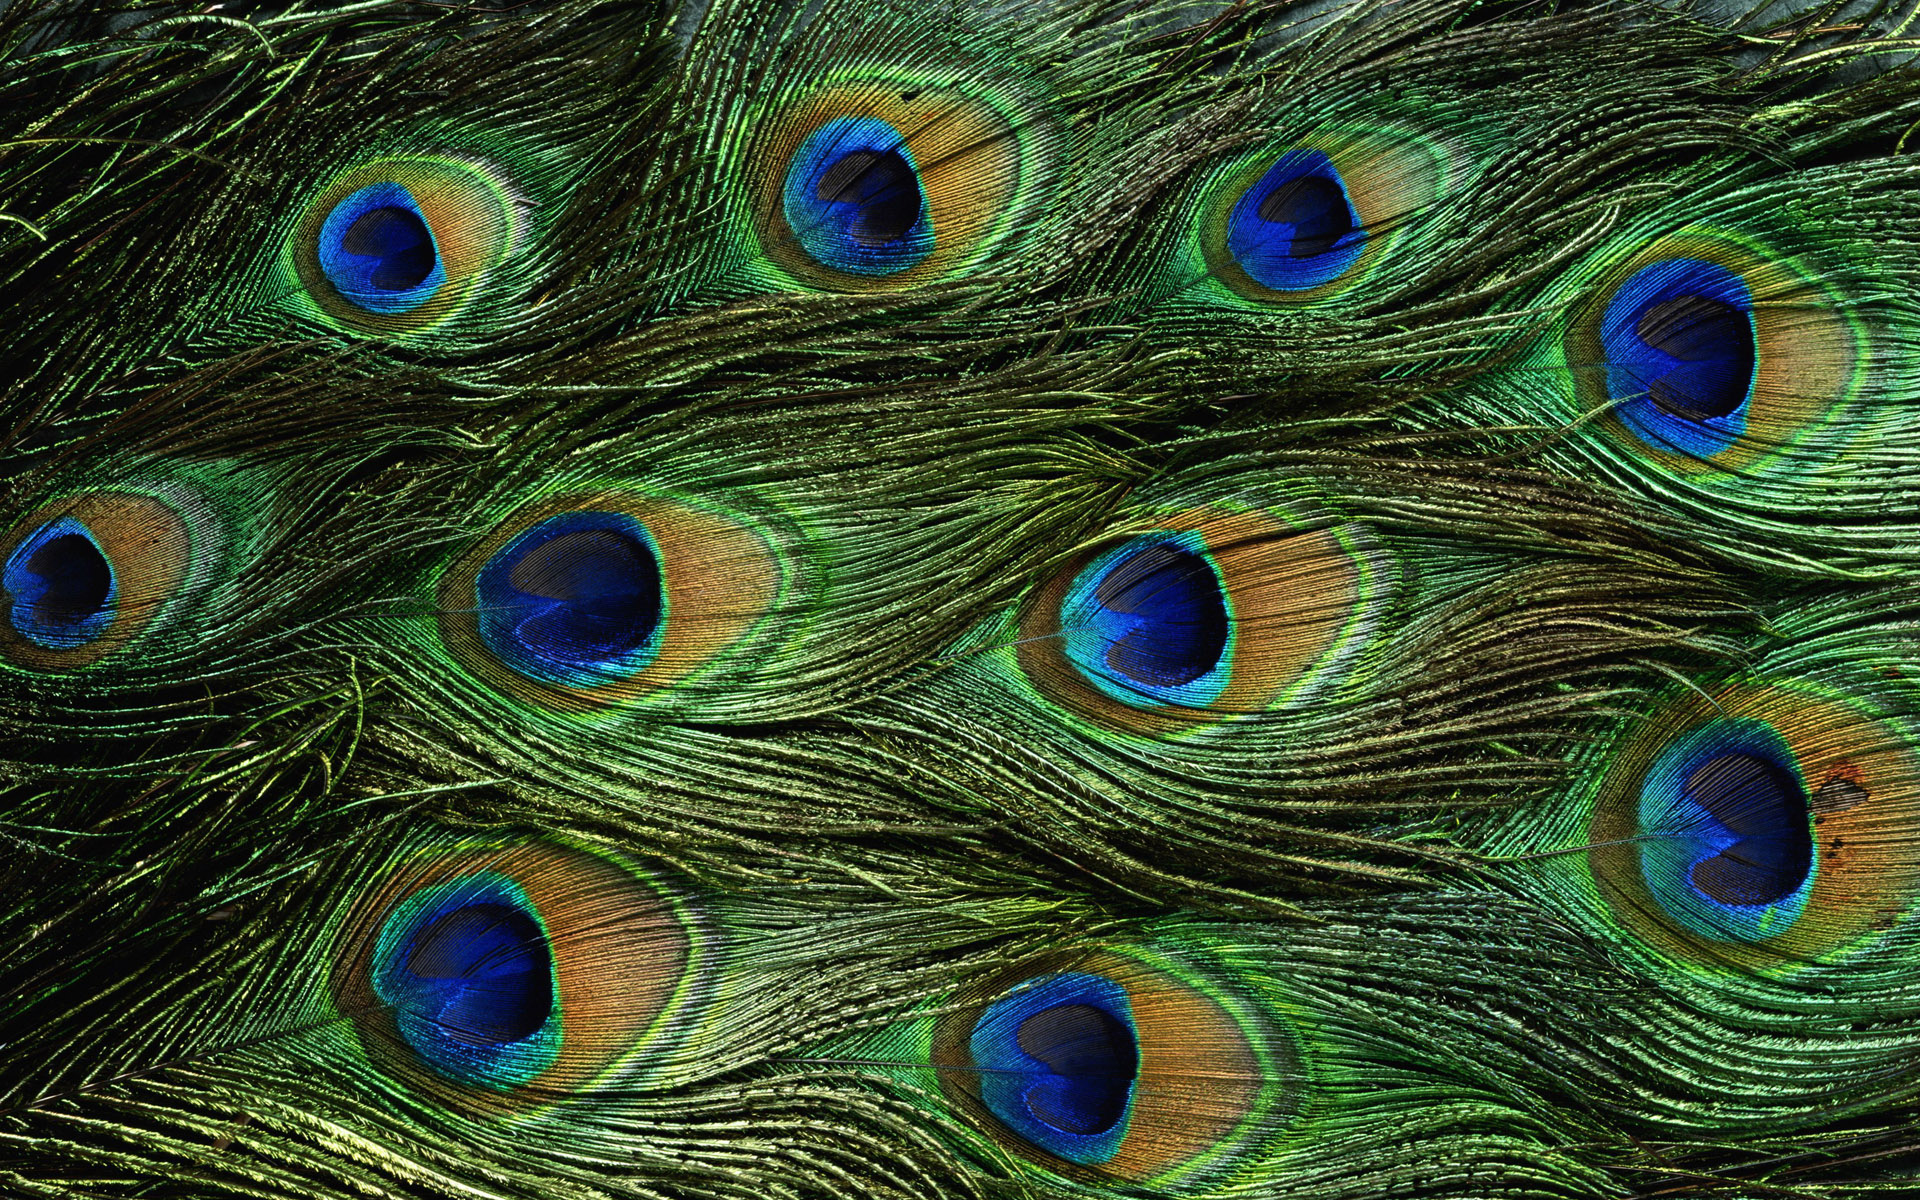 1920 x 1200 - 1301k - jpg 2309 Peacock Feather Background ...